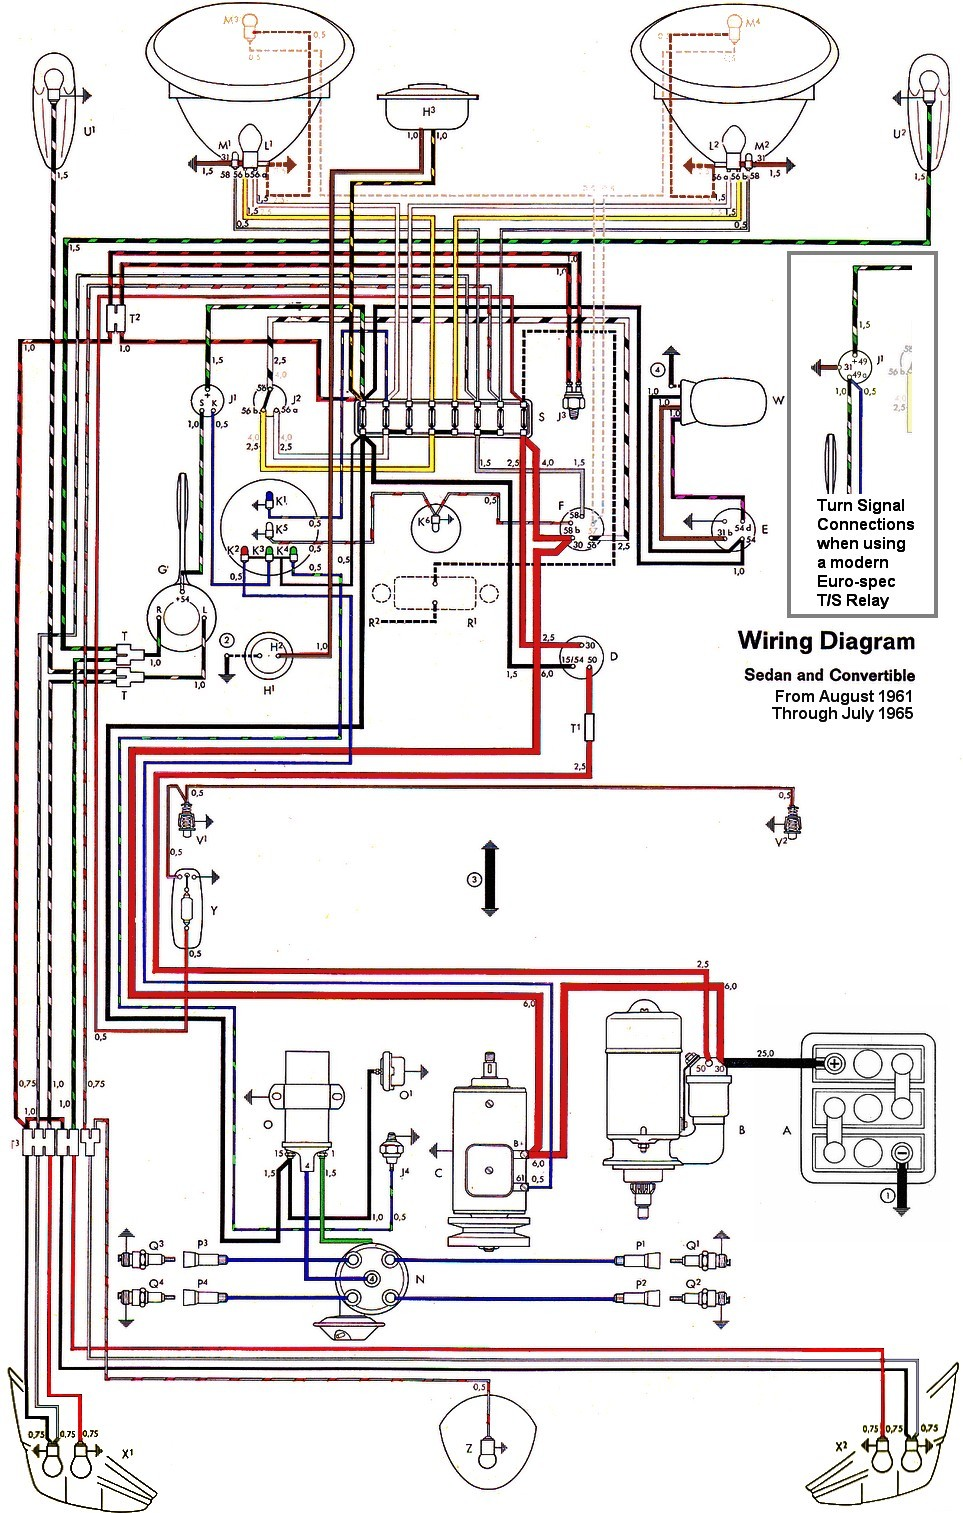 medium resolution of thesamba com type 1 wiring diagrams 1973 vw beetle ignition coil wiring diagram vw beetle wiring diagram 1973